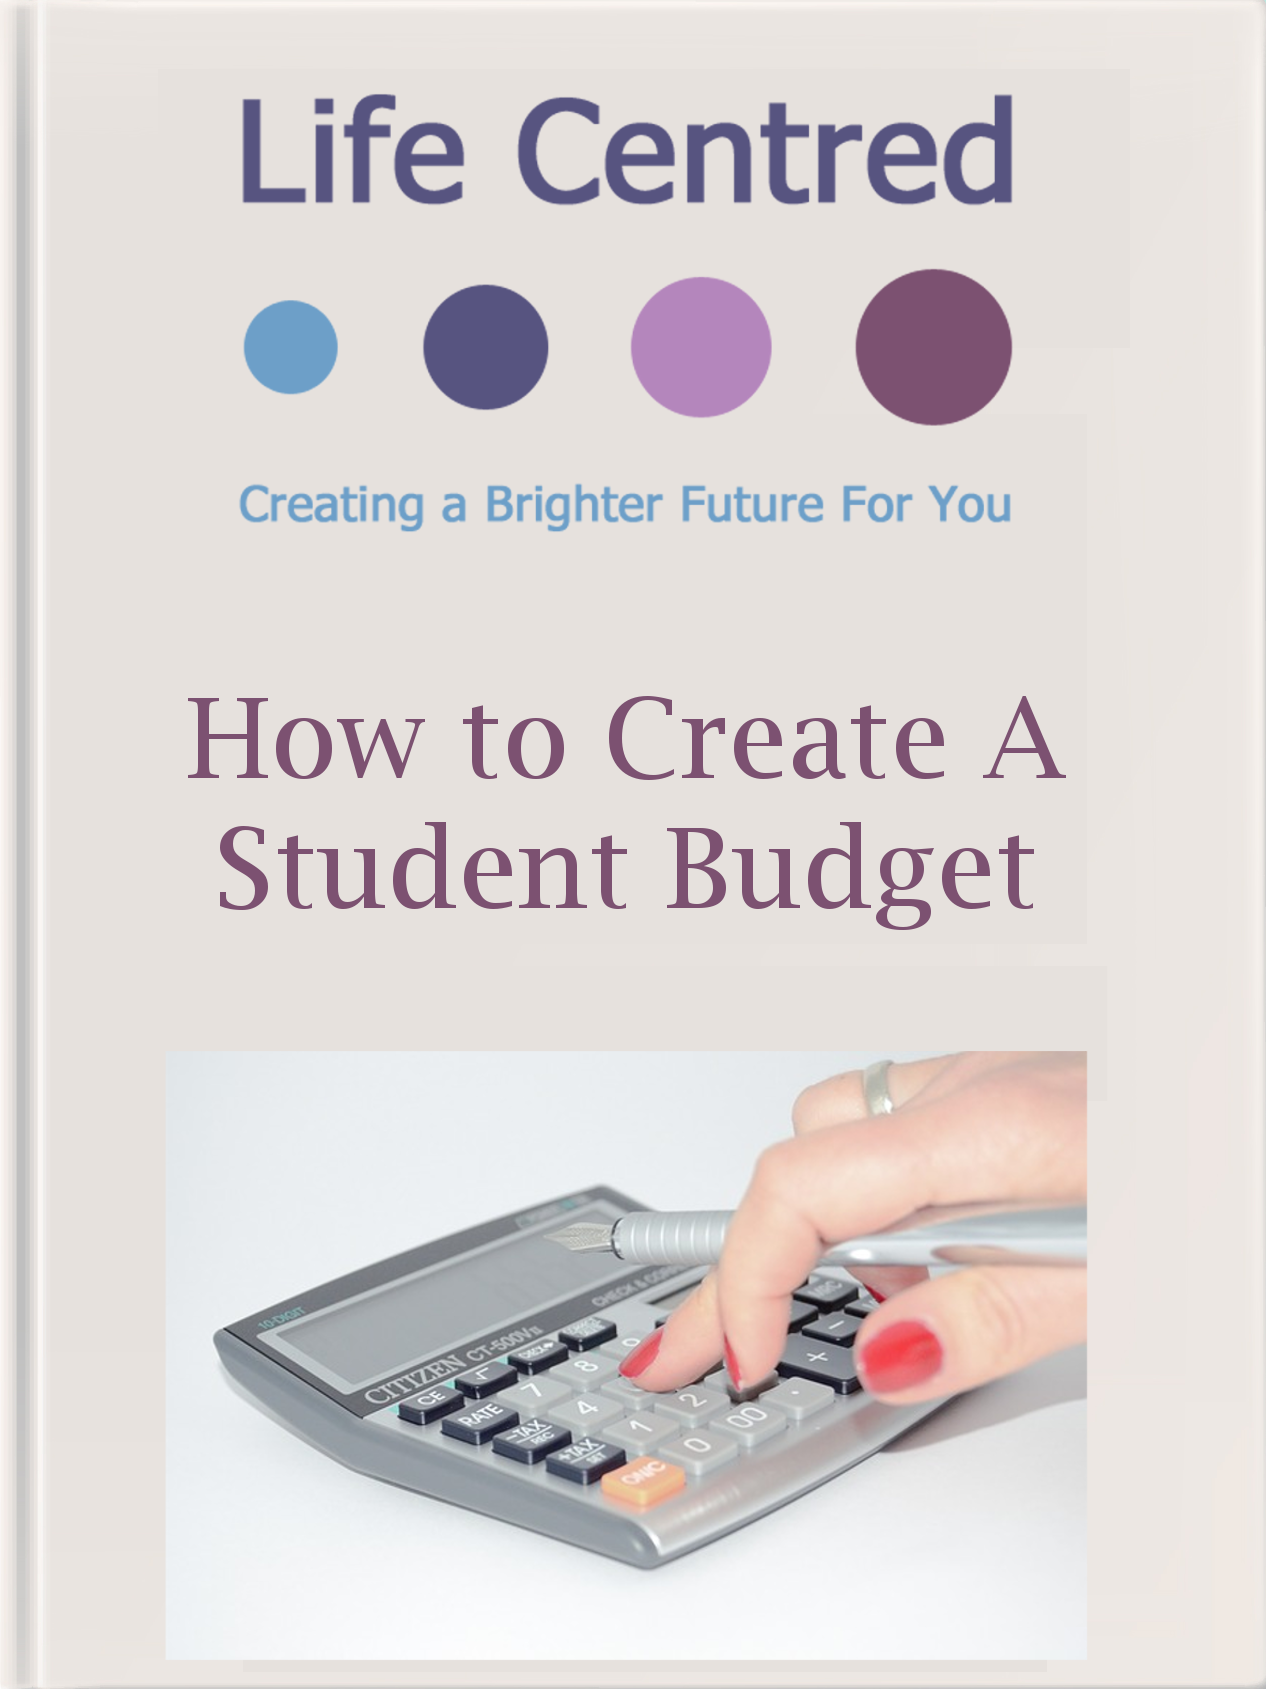 Download our Student Budget Ebook